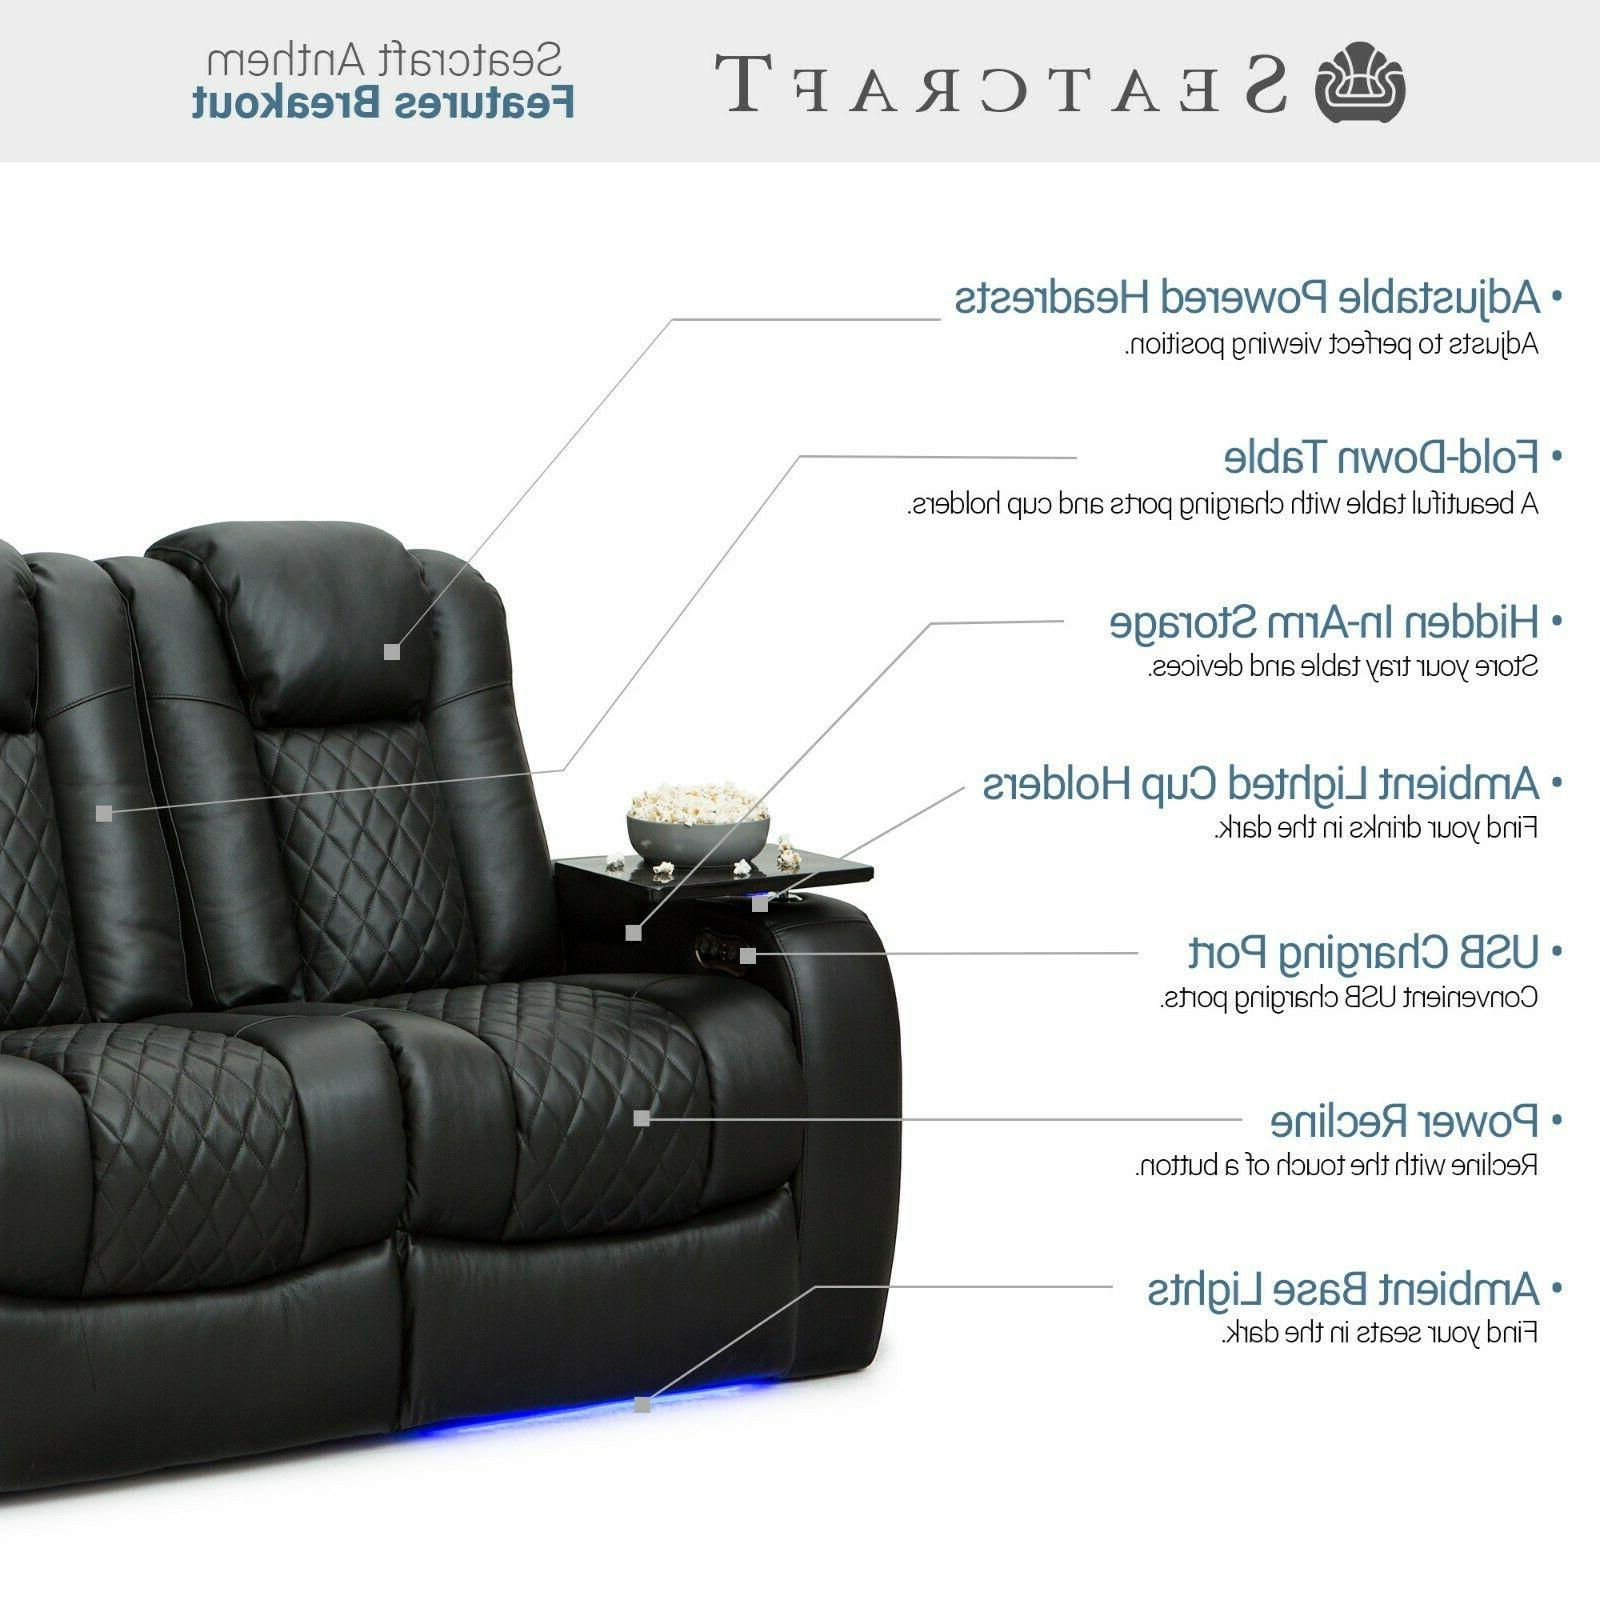 Seatcraft Anthem Leather Home Theater Seating Recliner Seat Couch